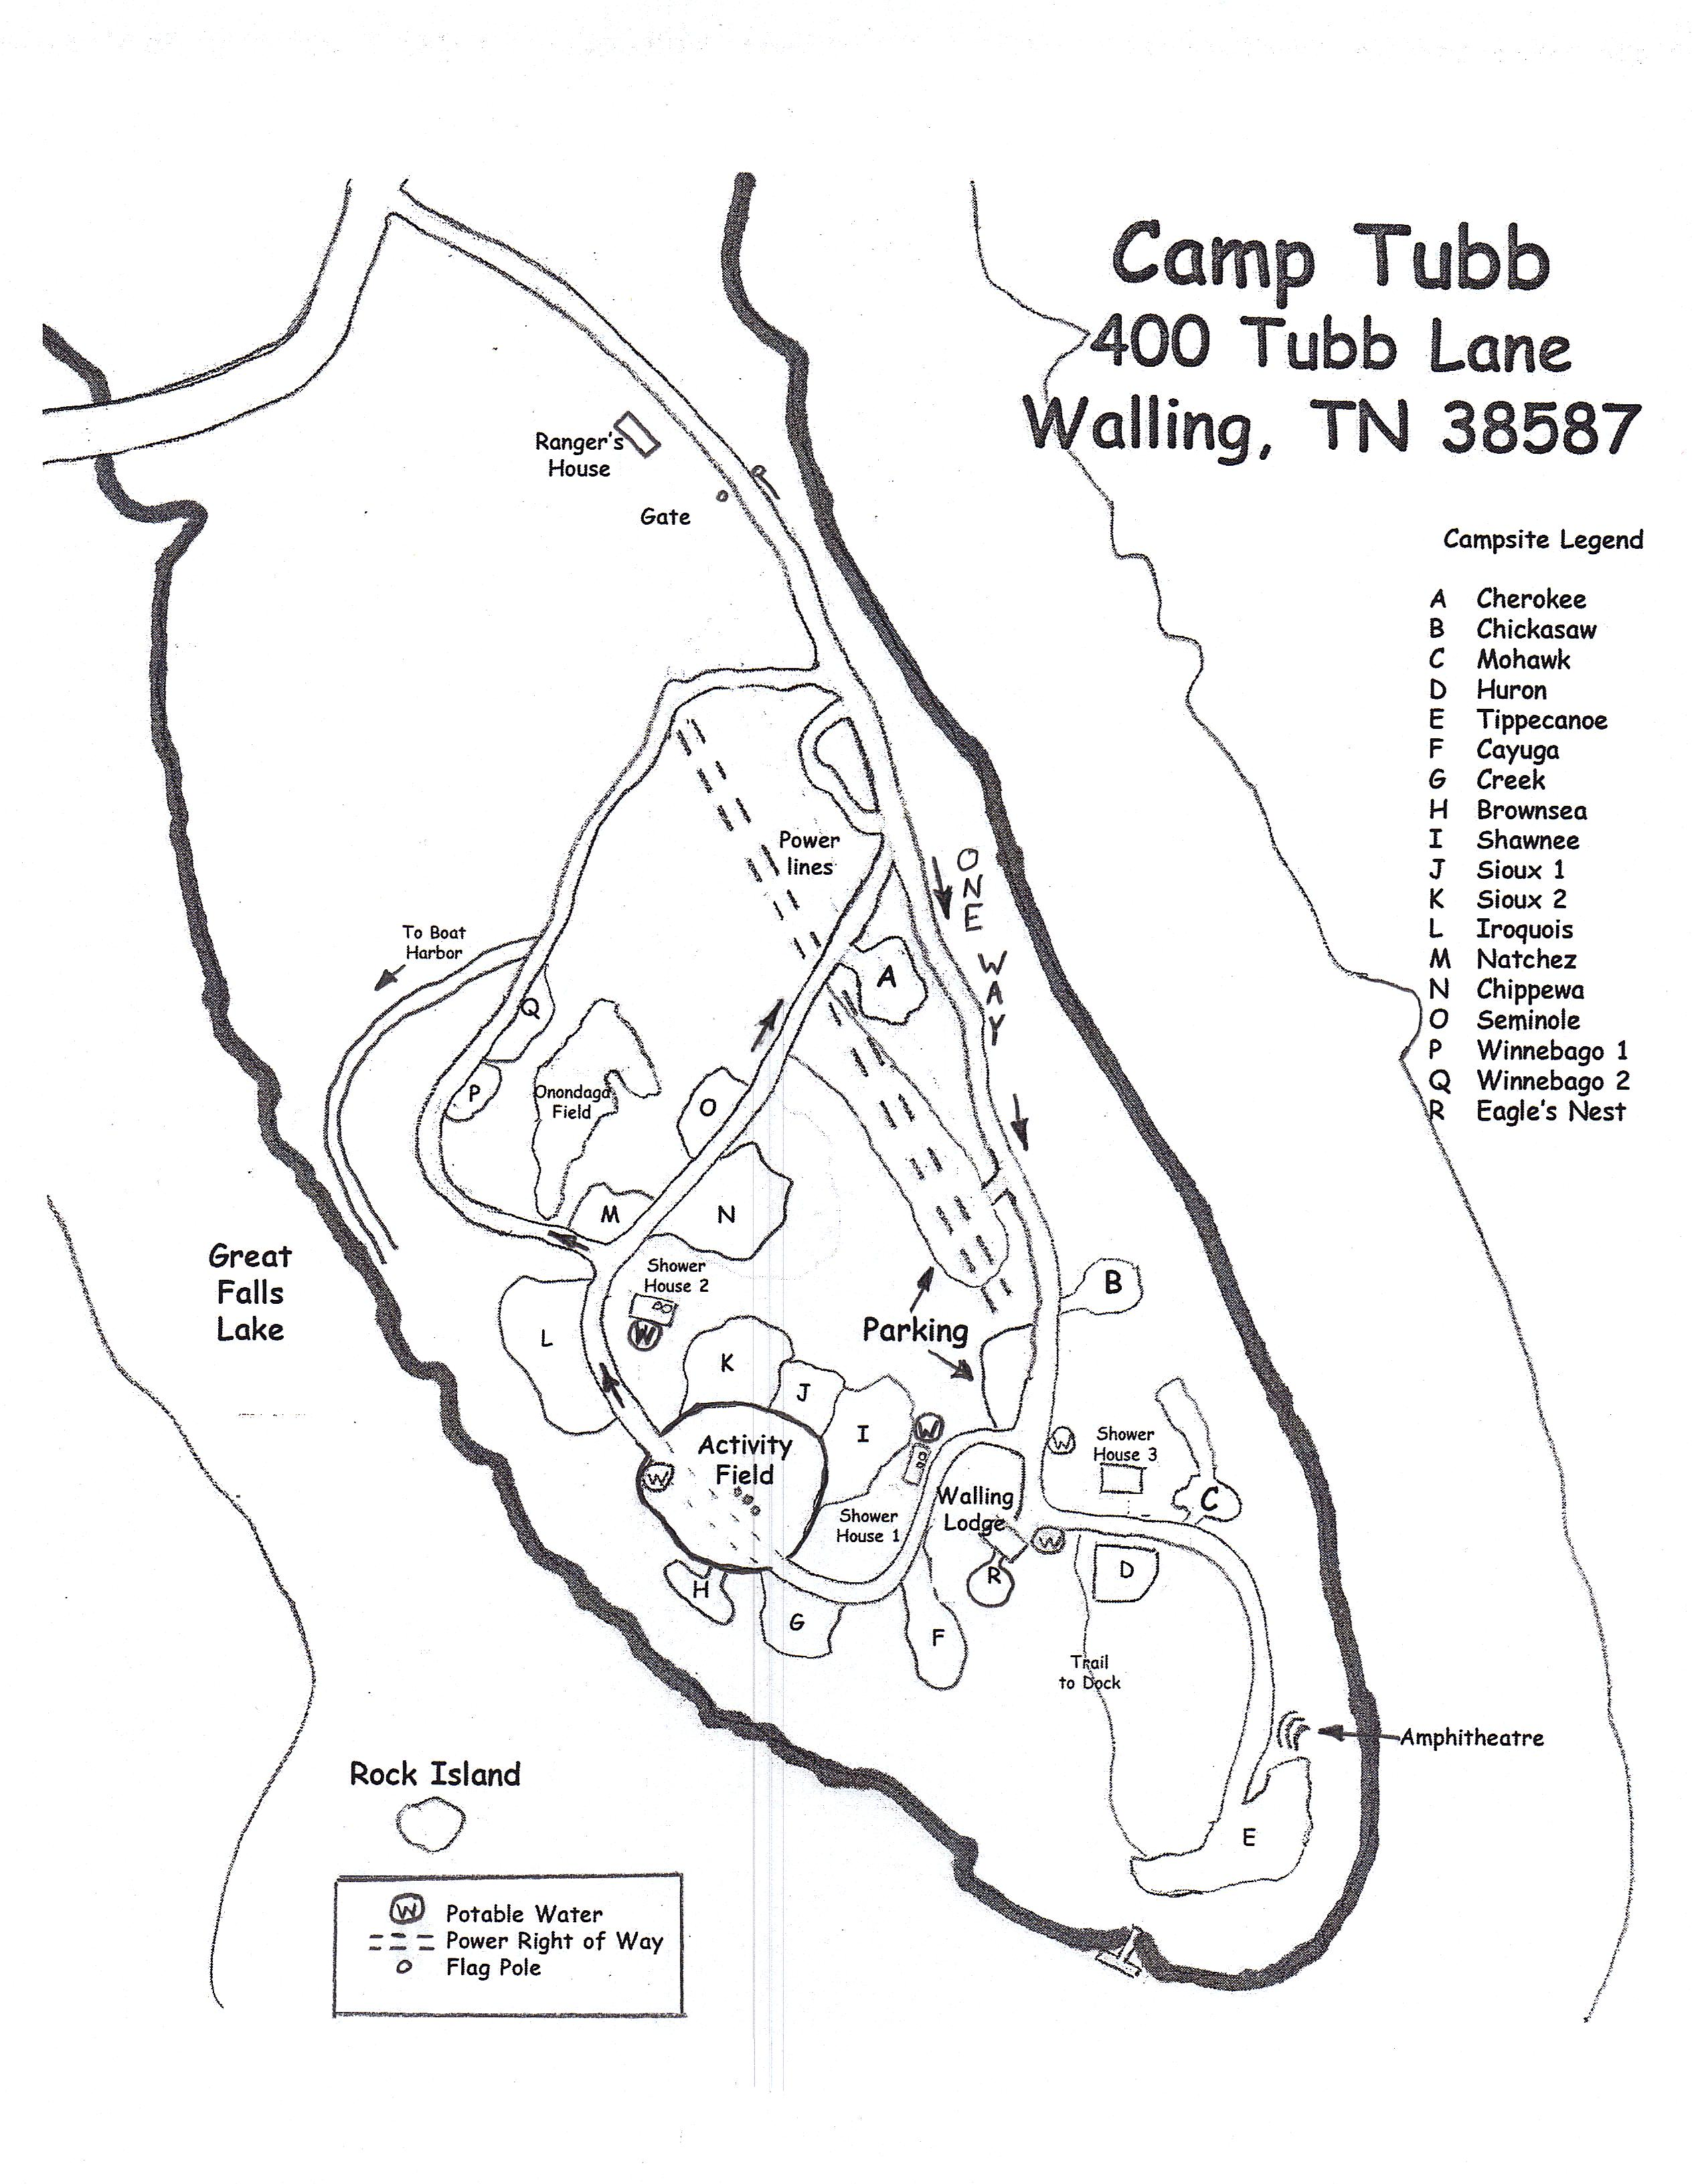 Map Of Camp Tubb Charles E Parish Reservation